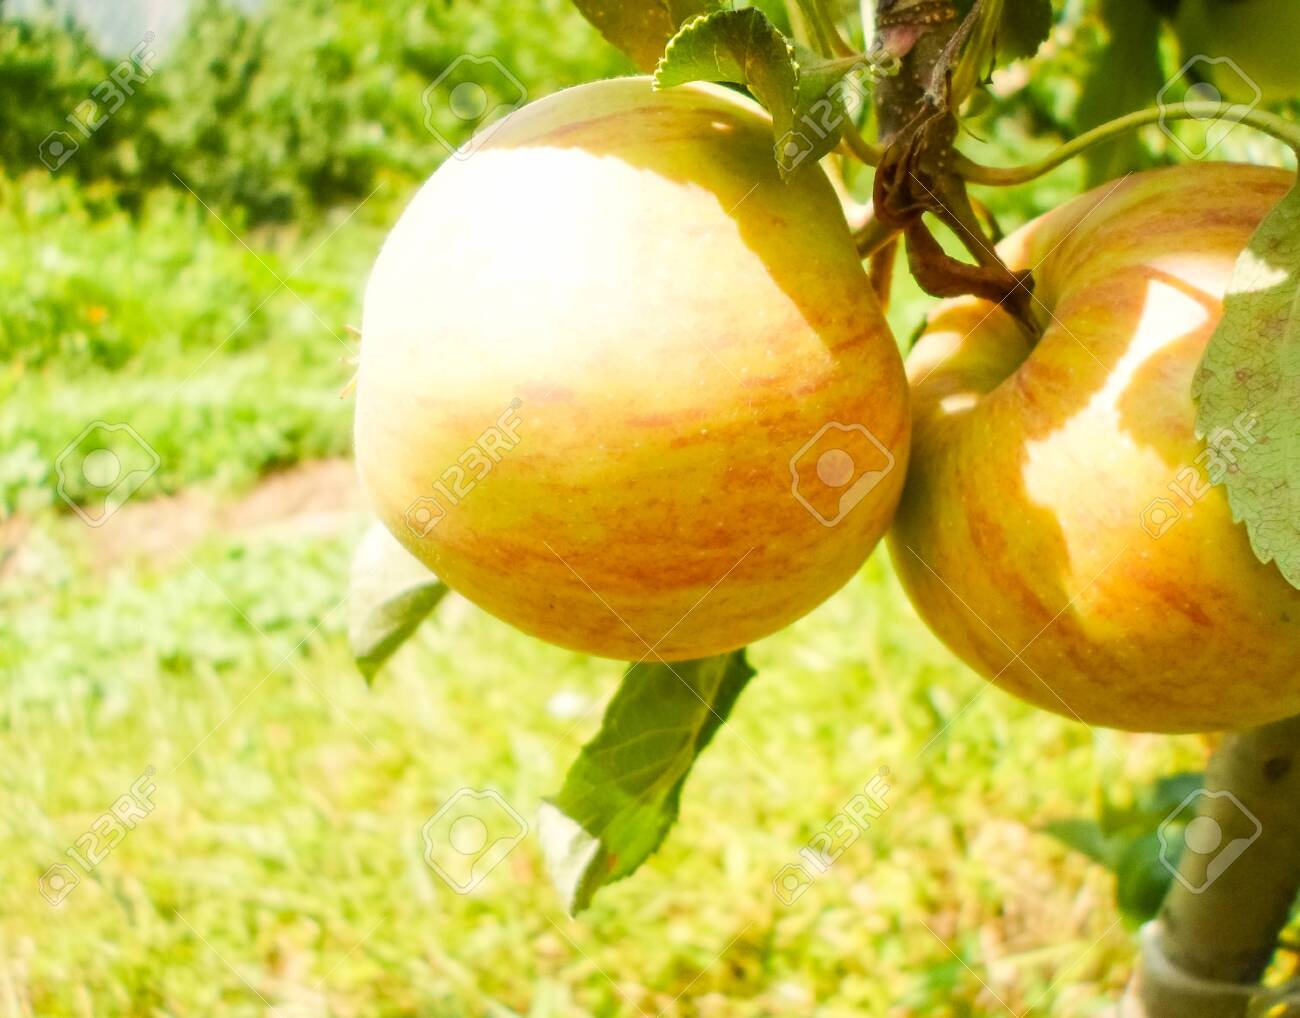 Large green and red apples on apple tree branches in the garden on a summer day - 148012999